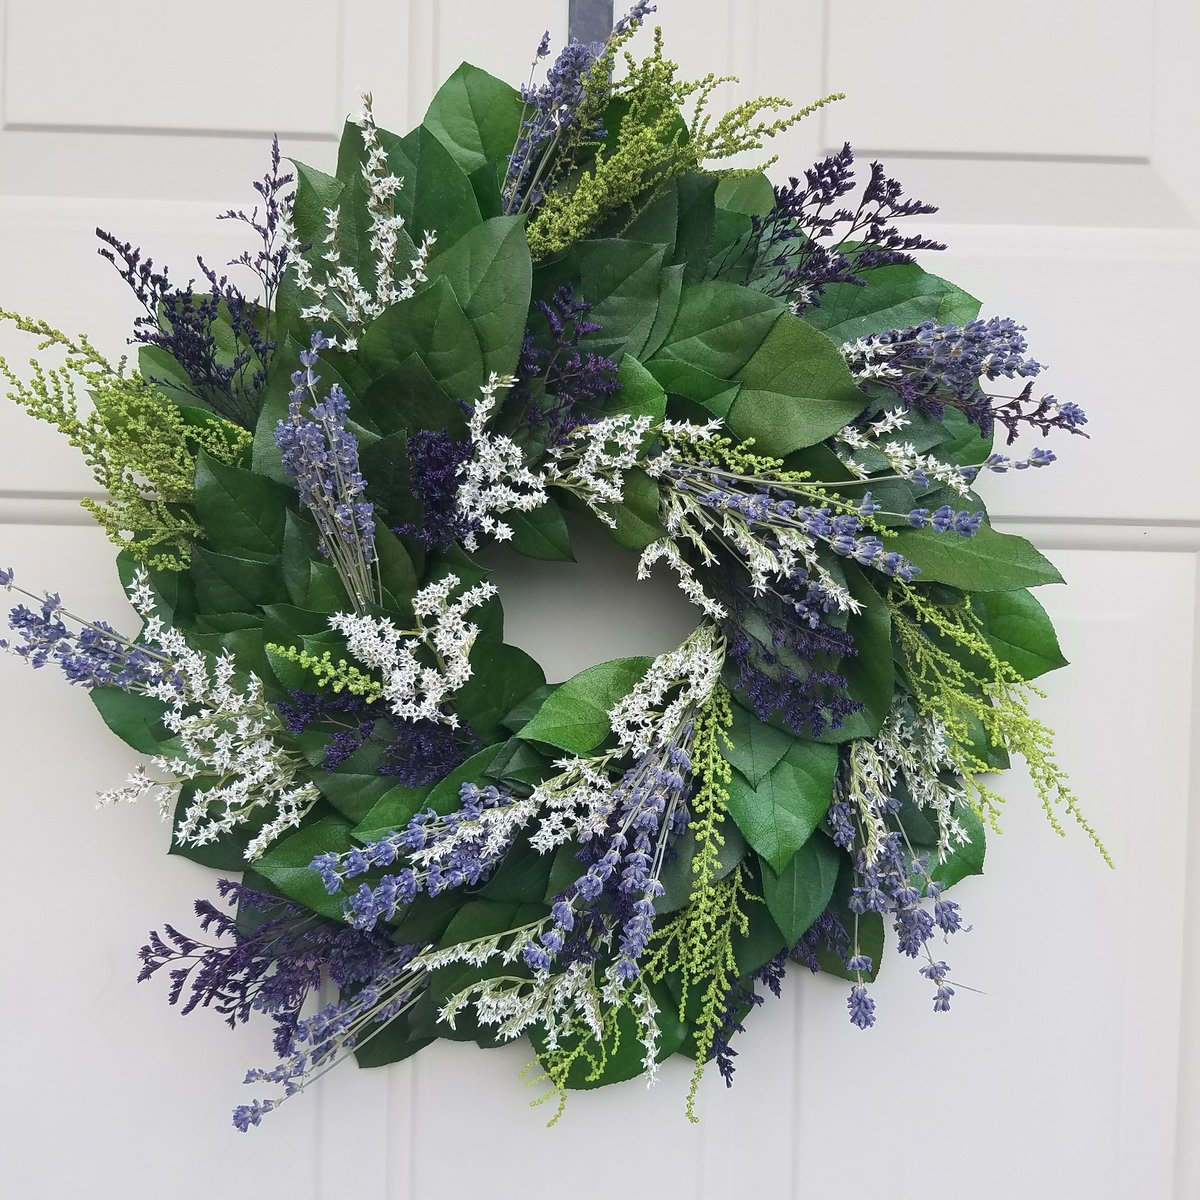 Lavender wreath with preserved Salal leaves www.endlessblossoms com #etsyseller  #preservedwreath #wreaths #mothersday<br>http://pic.twitter.com/VXuBwsPiVA